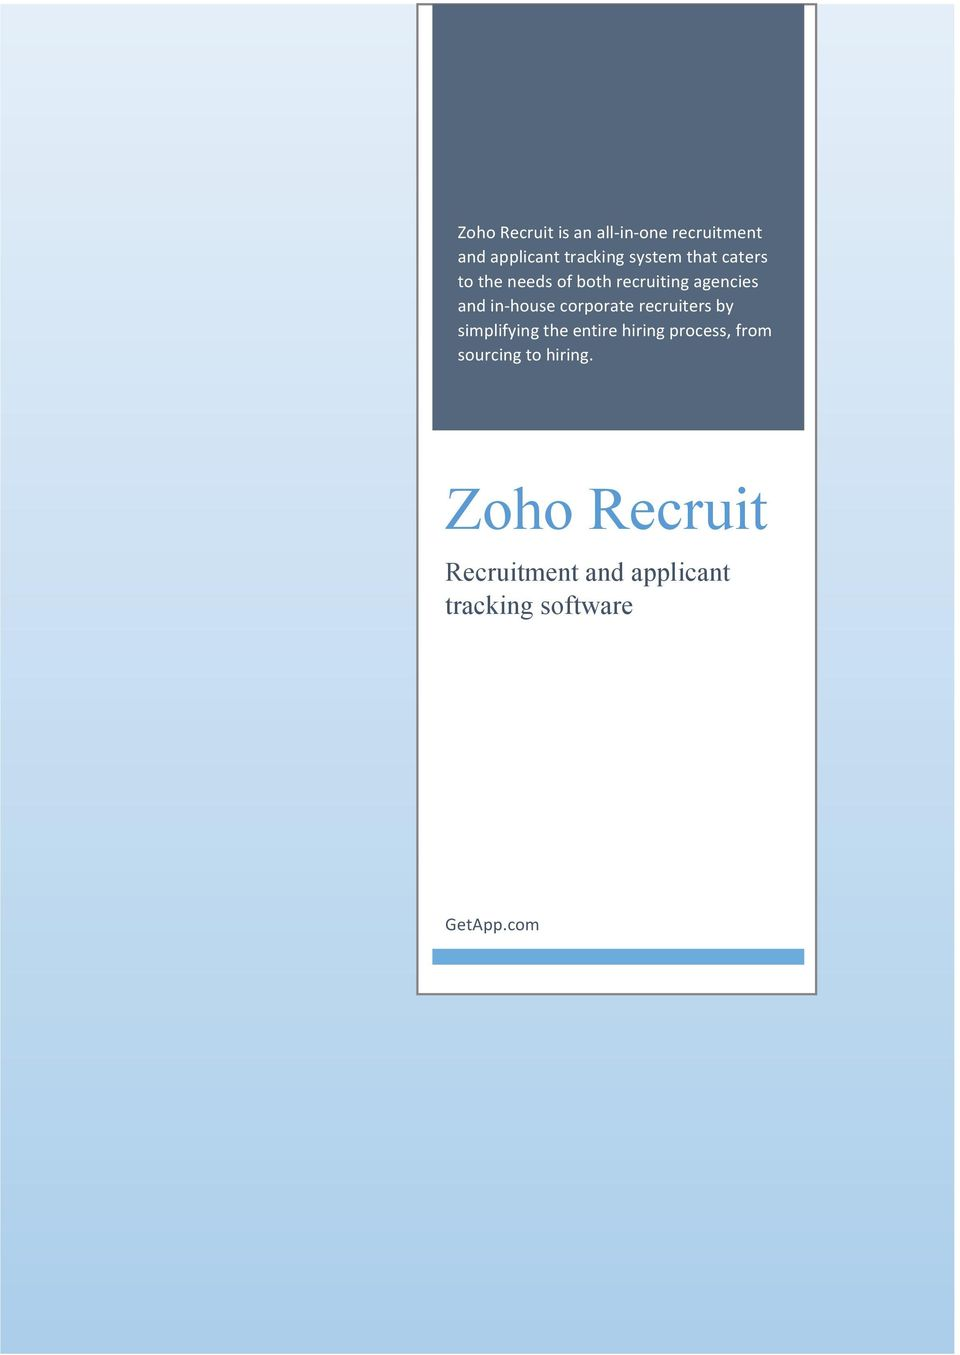 corporate recruiters by simplifying the entire hiring process, from